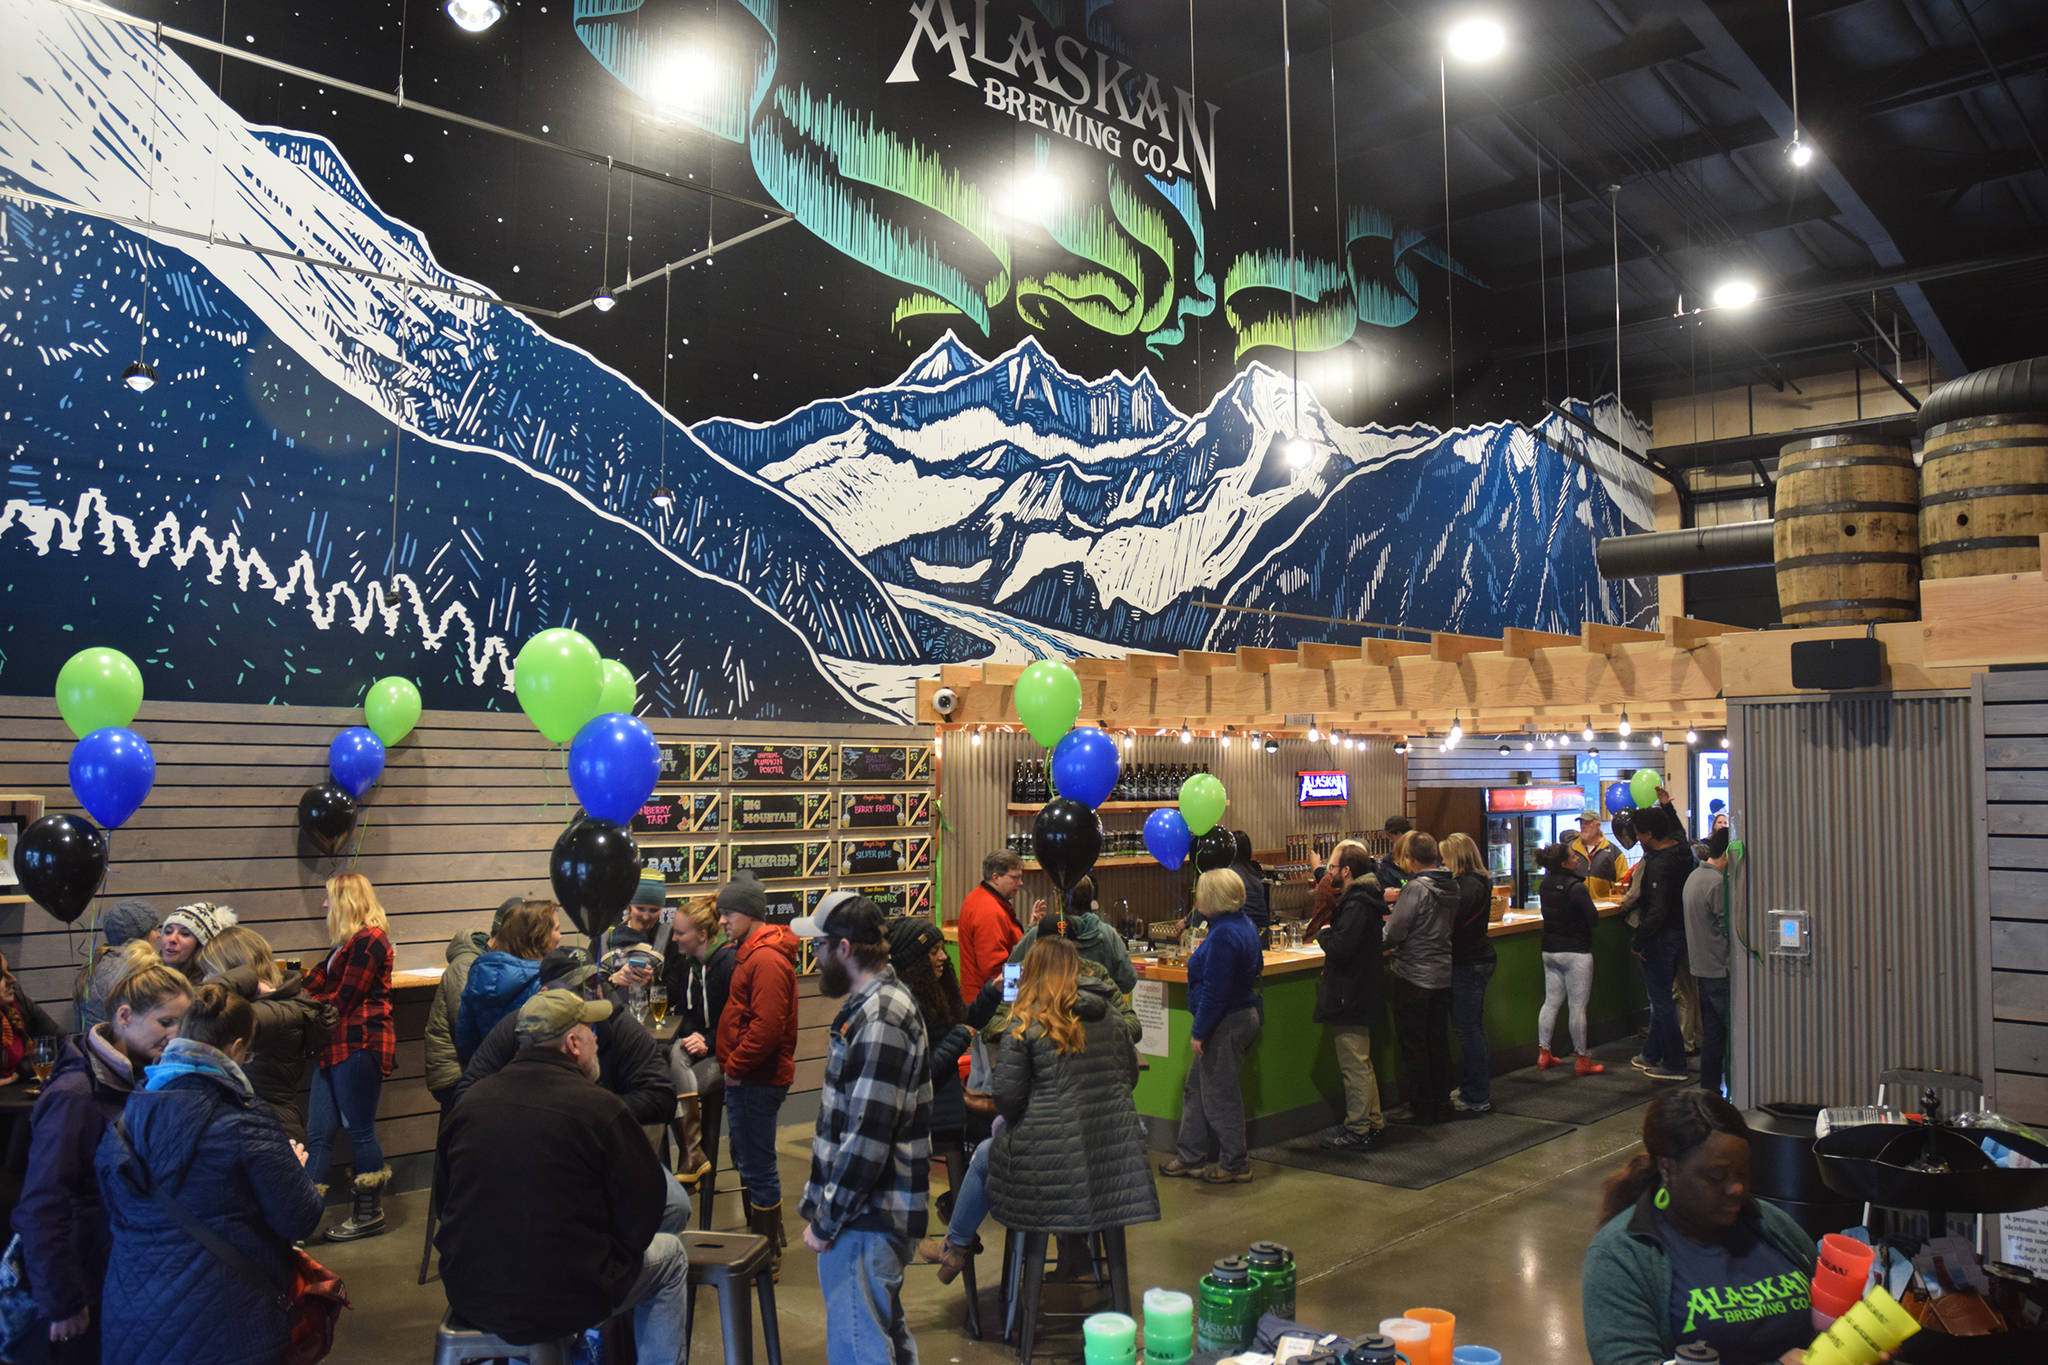 Beer lovers gather at the grand opening of Alaskan Brewing Co.'s new tasting room on Commercial Boulevard, Saturday, Nov. 3, 2018. (Kevin Gullufsen | Juneau Empire)